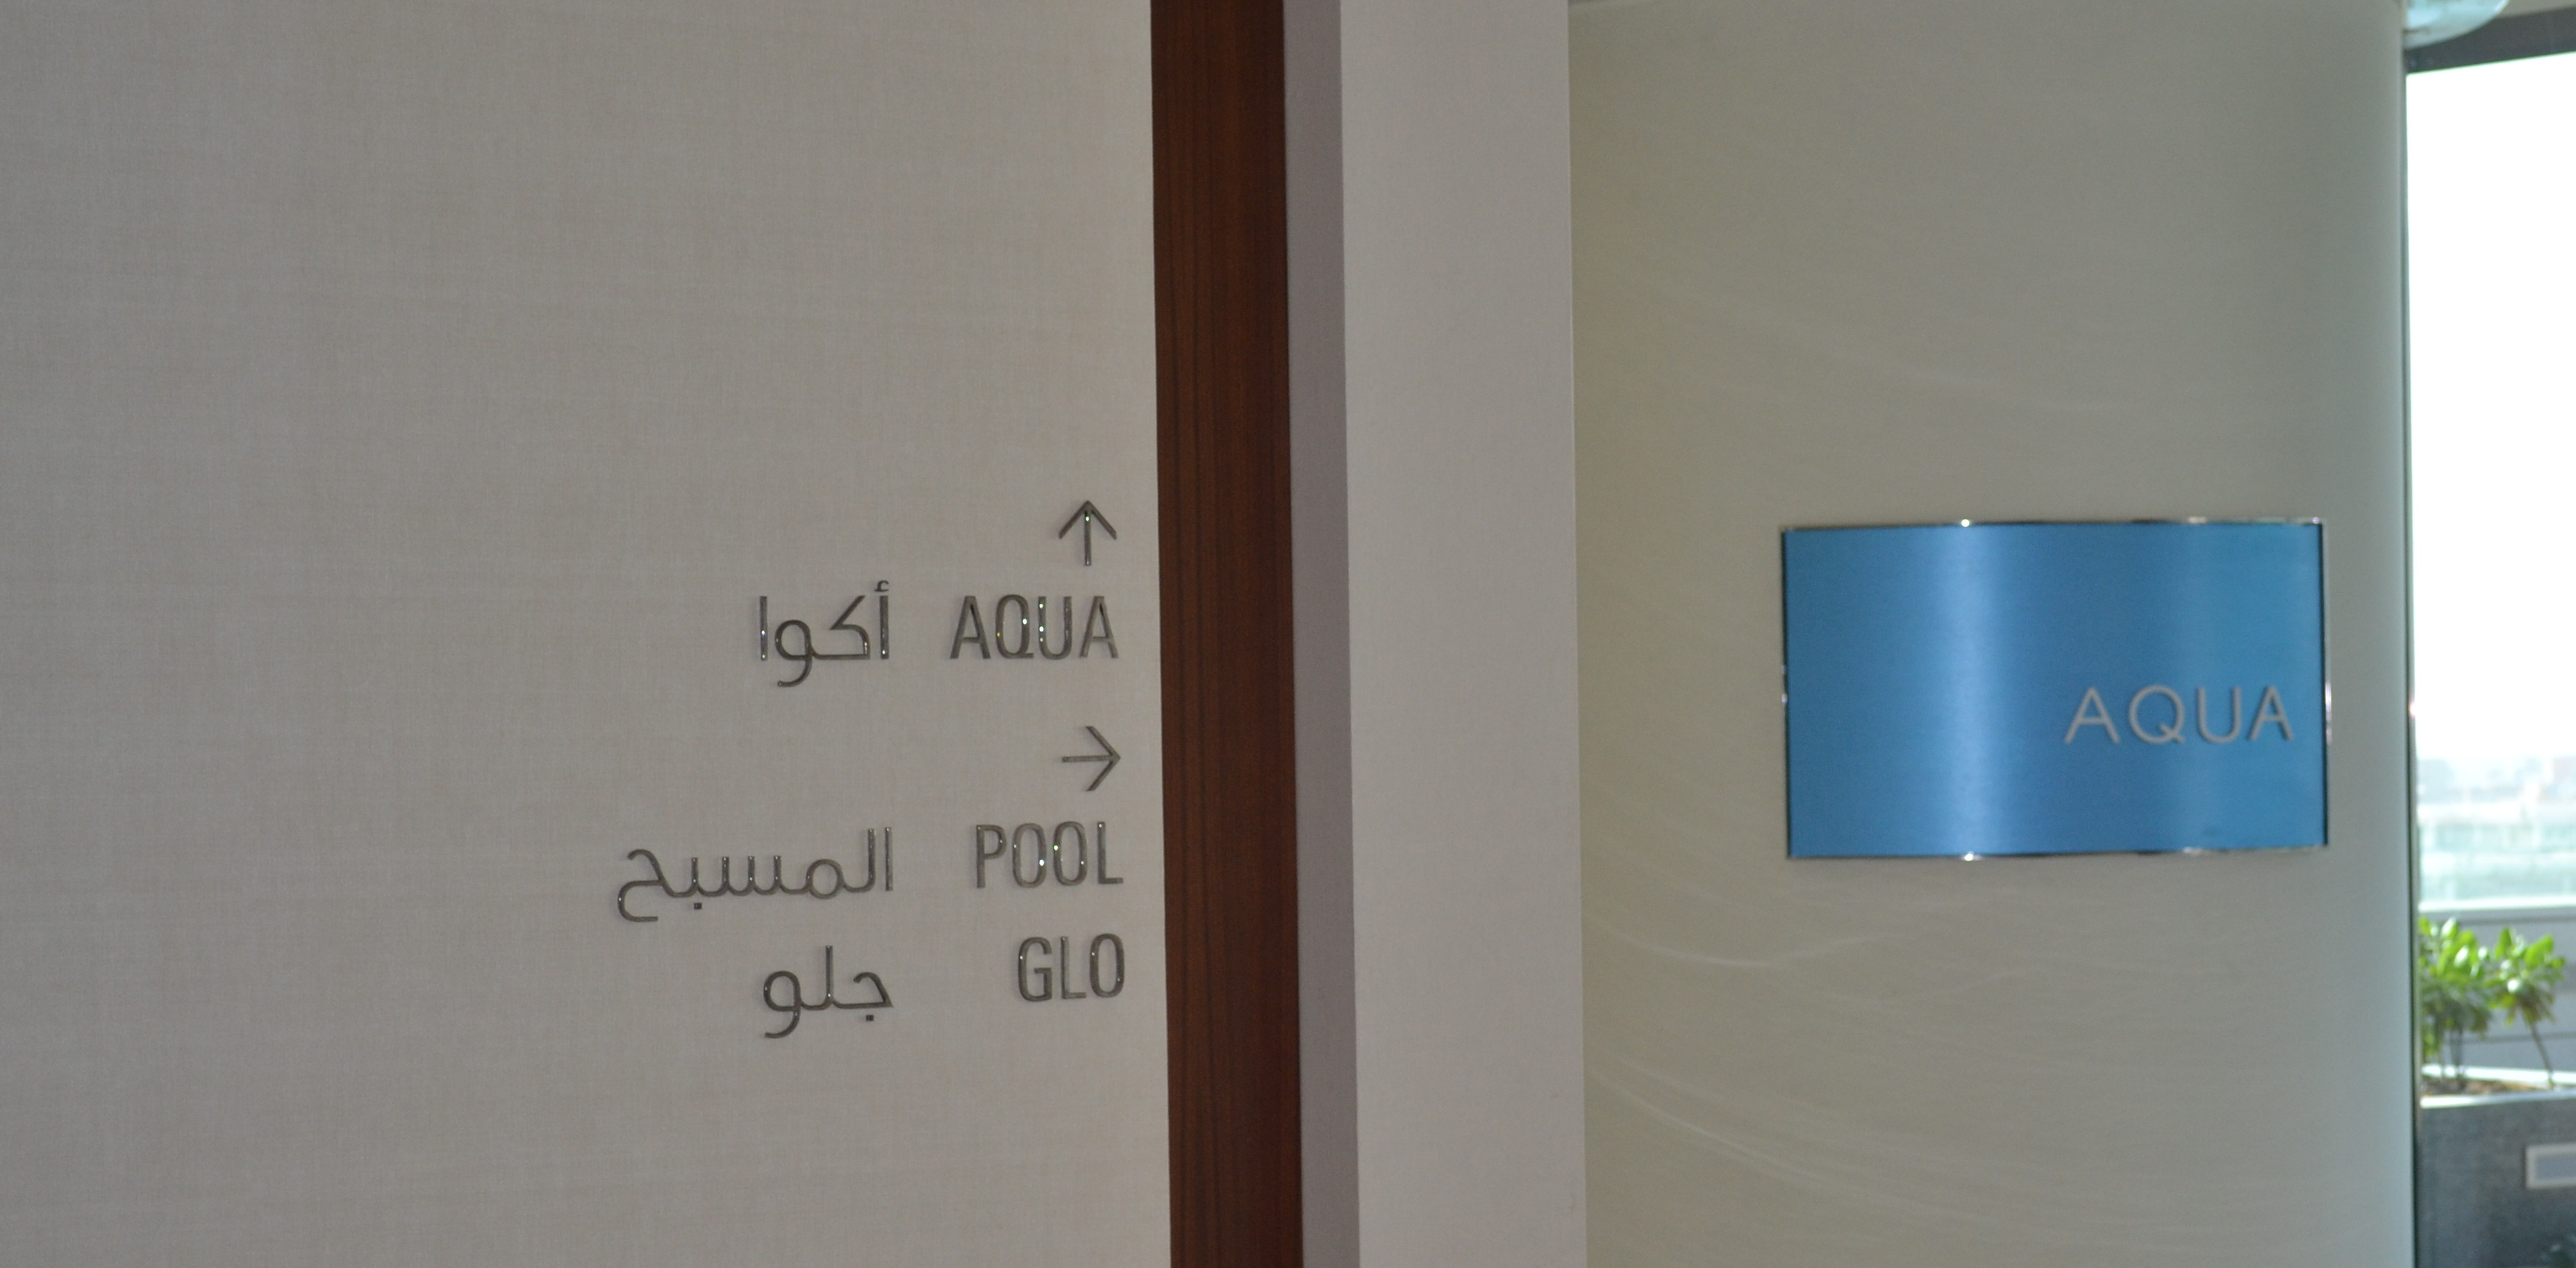 <h2>Rosewood Hotel - Pool Signs</h2><br/>